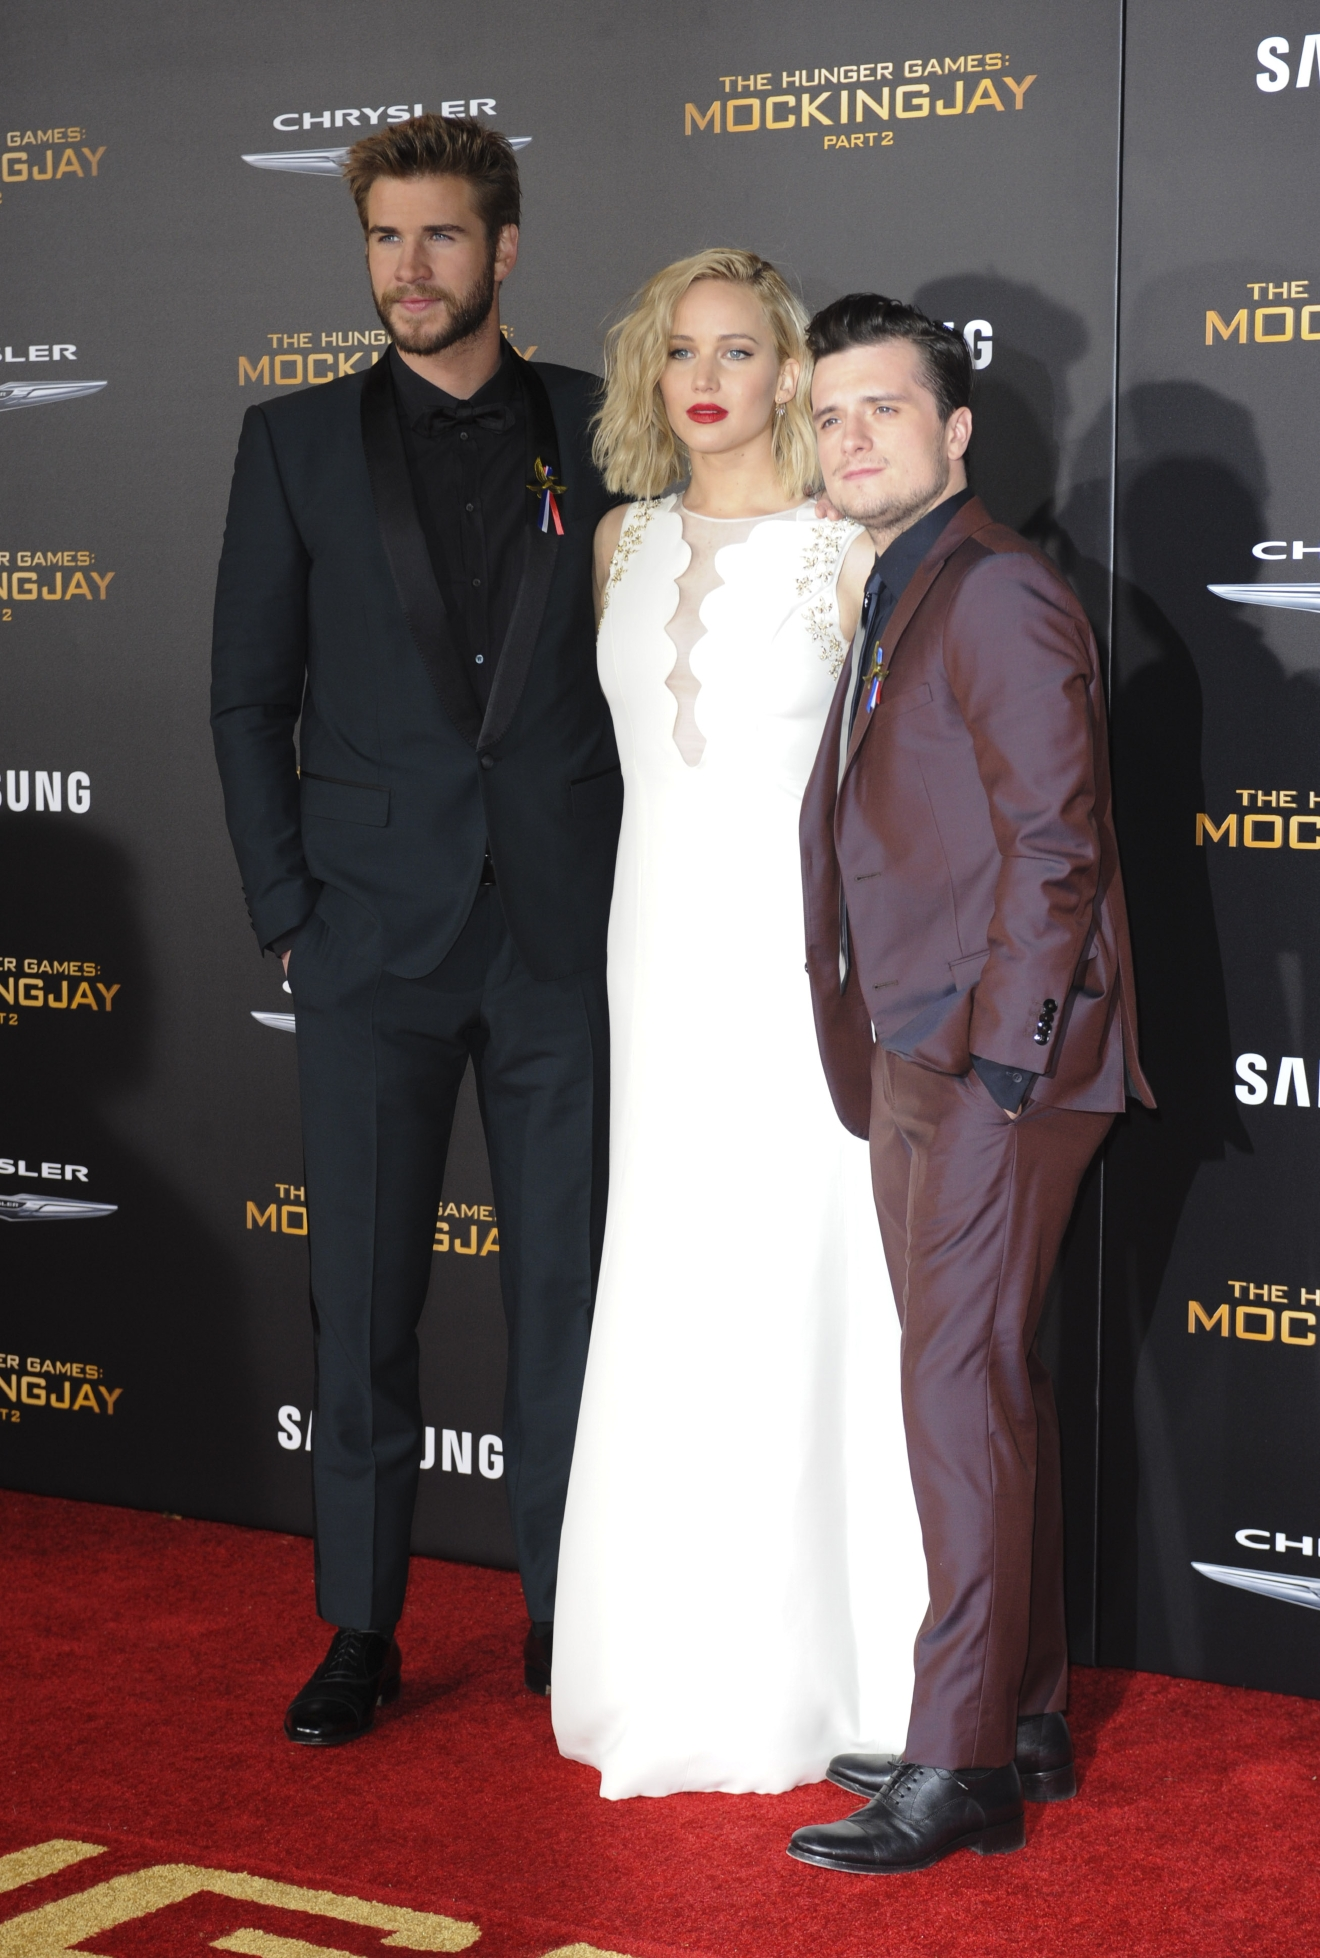 The Hunger Games Mockingjay 2  Featuring: Liam Hemsworth, Jennifer Lawrence, Josh Hutcherson Where: Los Angeles, California, United States When: 17 Nov 2015 Credit: Apega/WENN.com